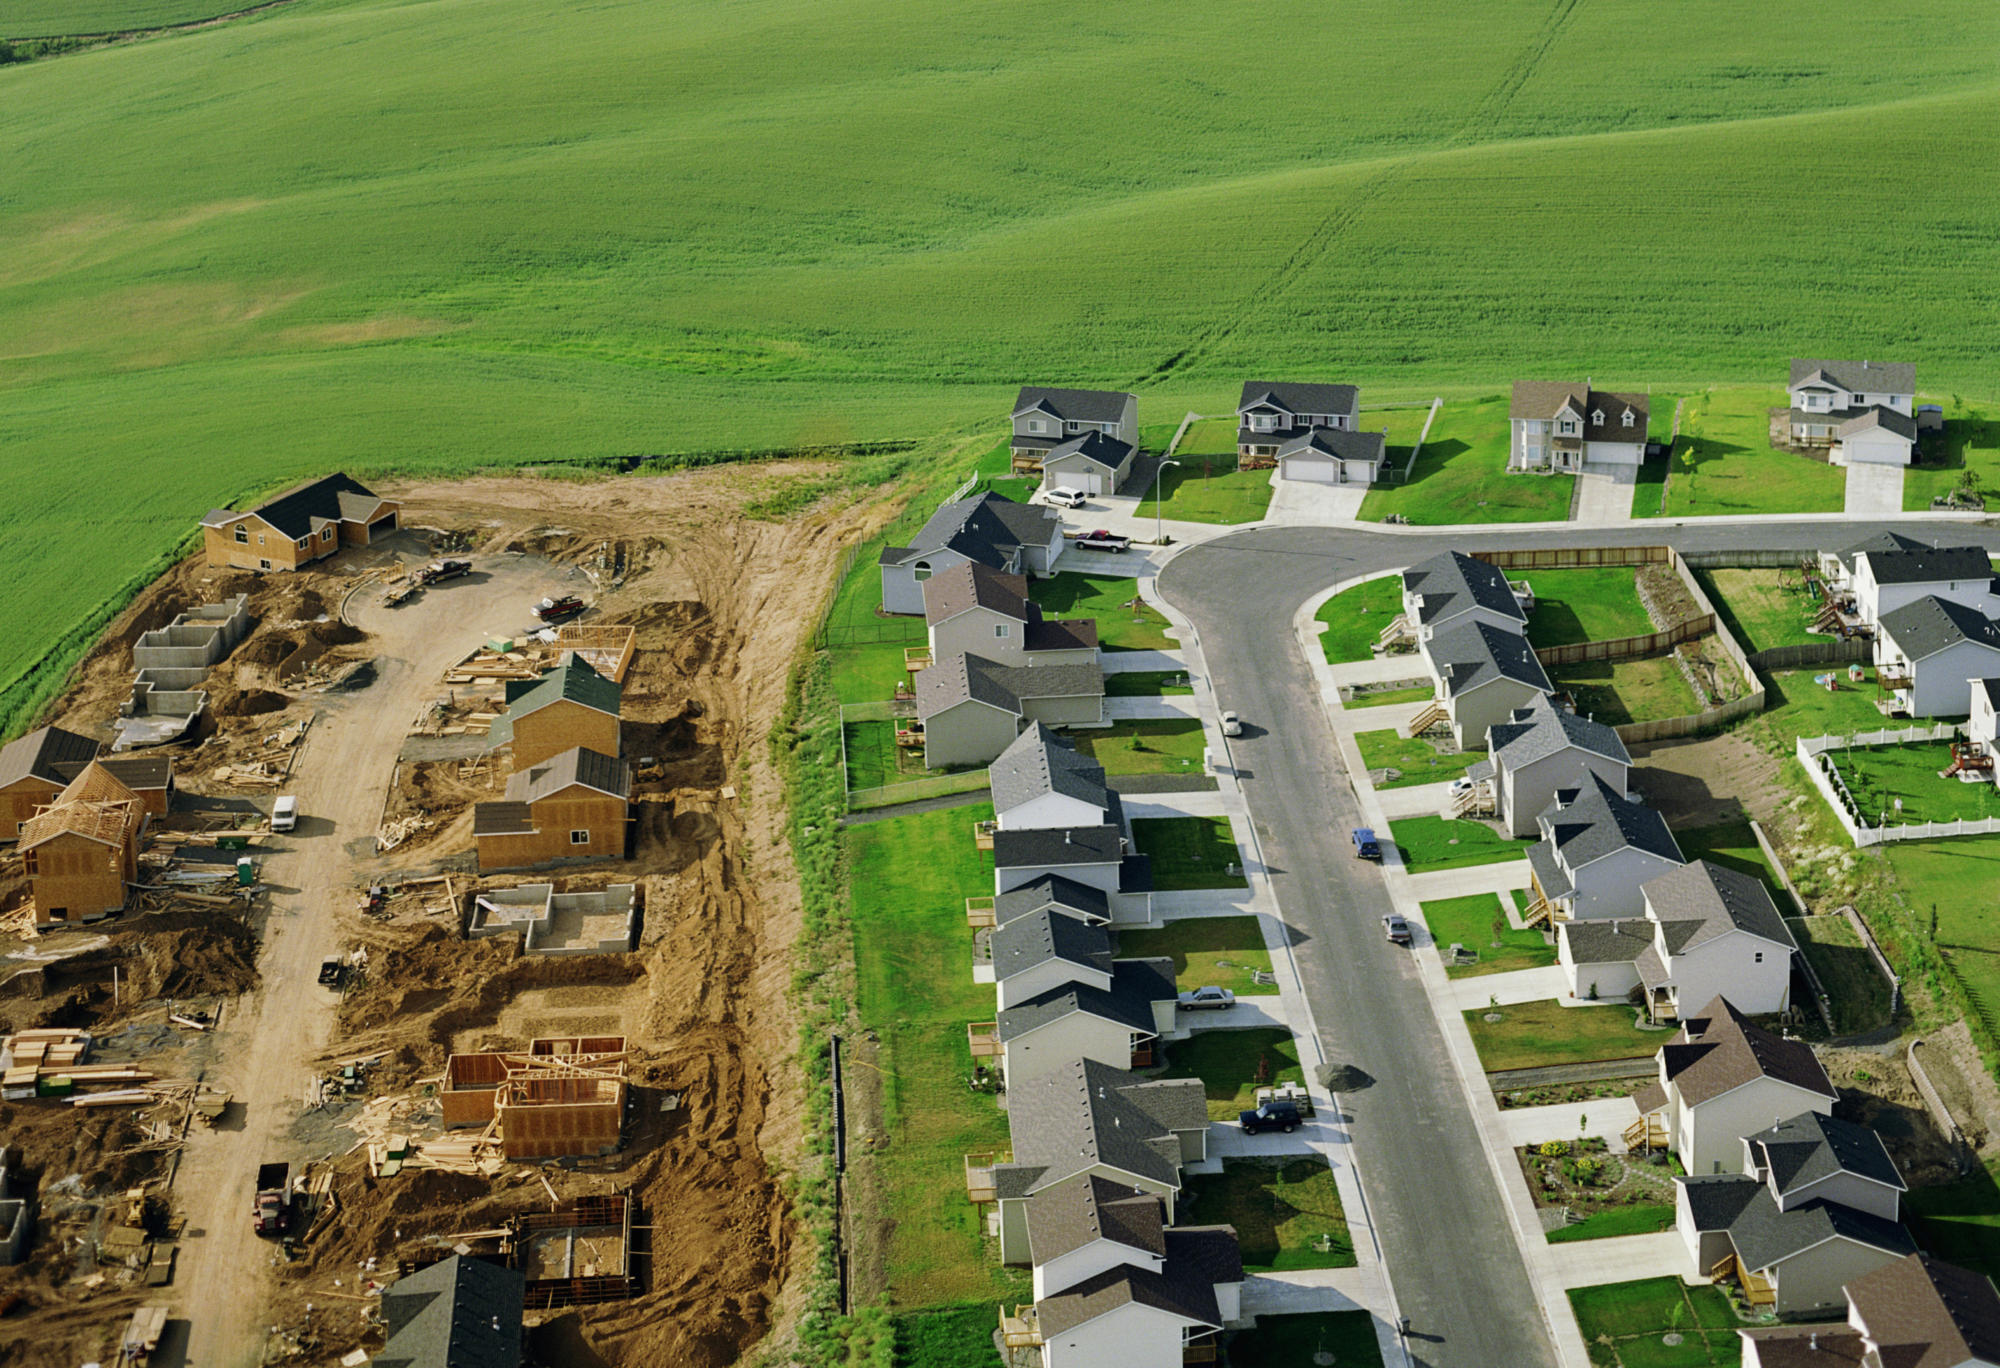 Housing development under construction on farmalnd, aerial view.